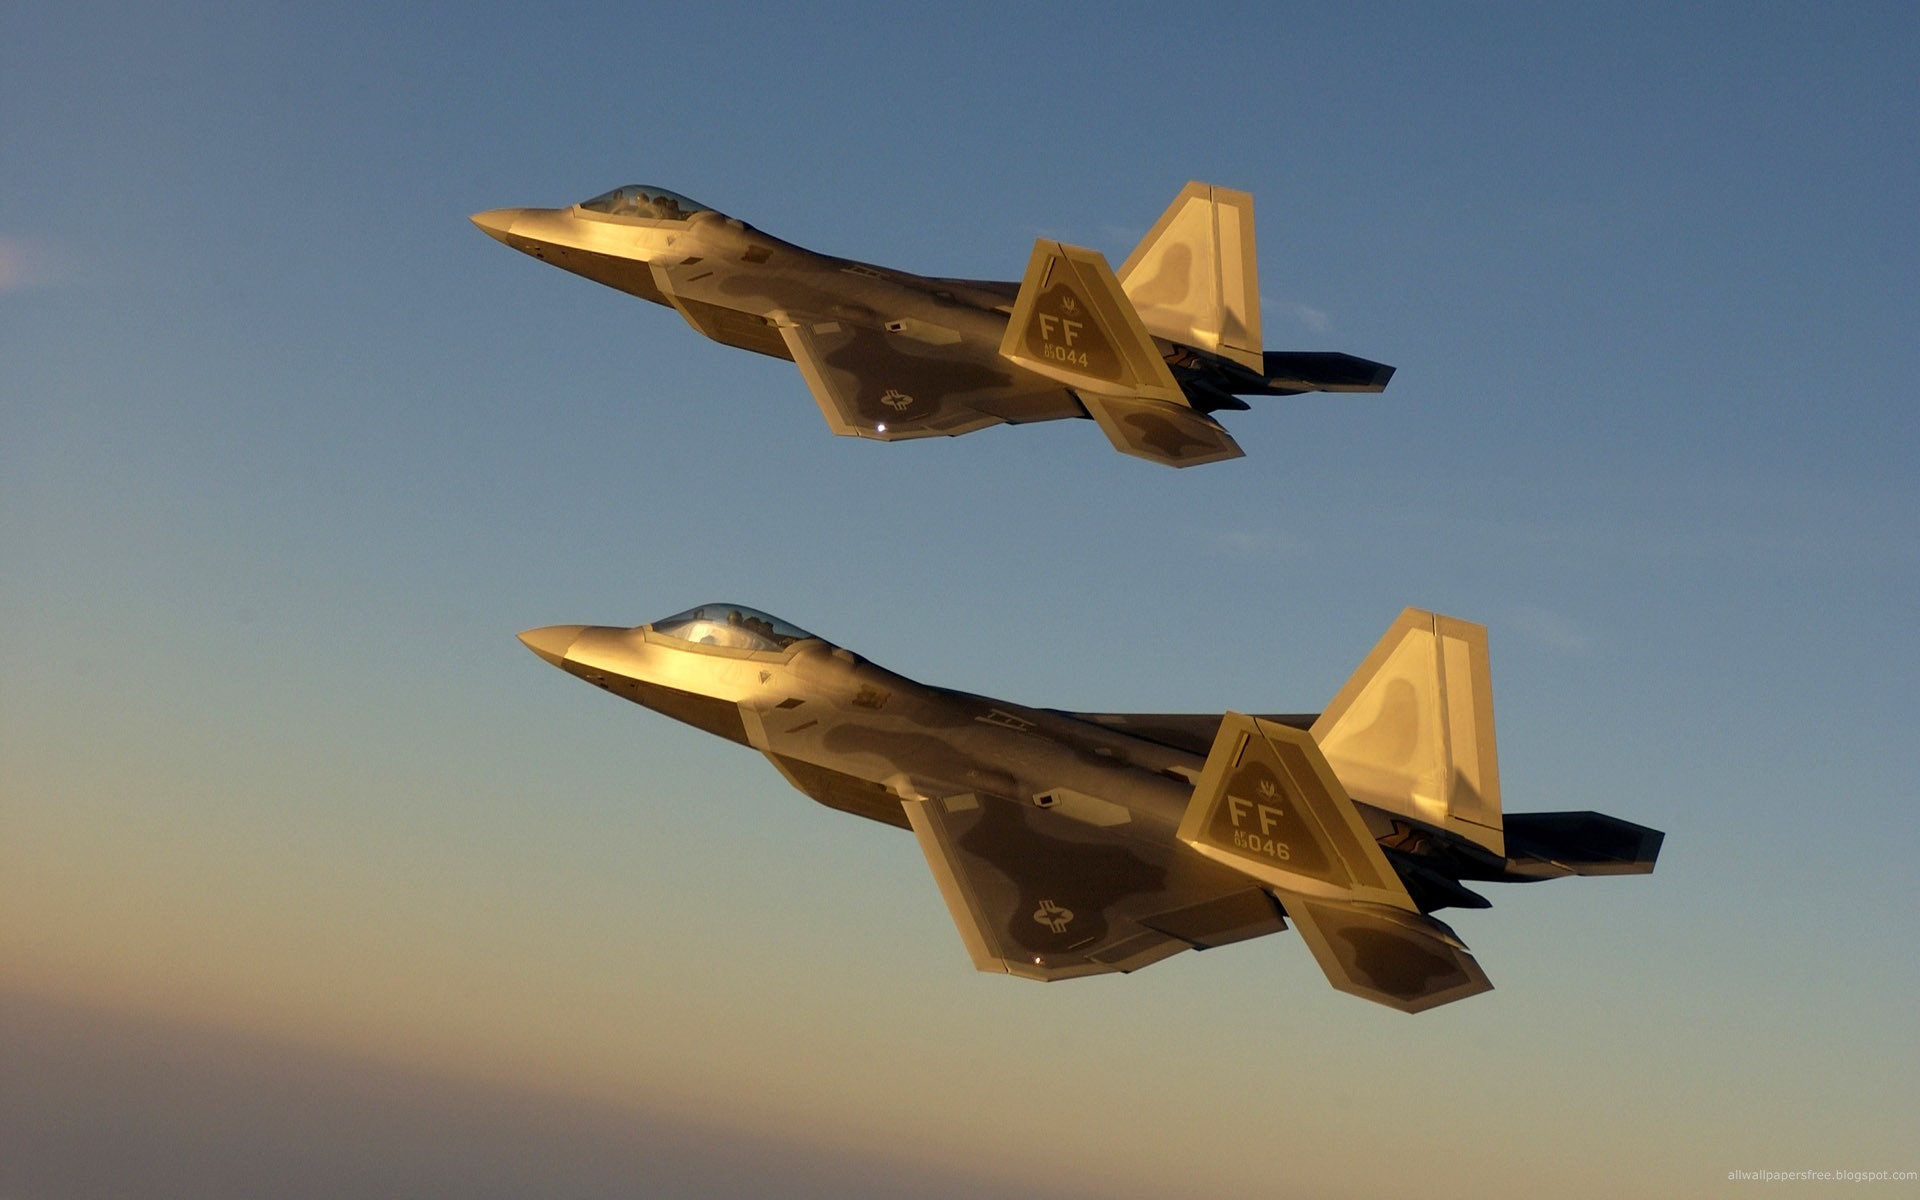 Golden Jet Fighter Planes